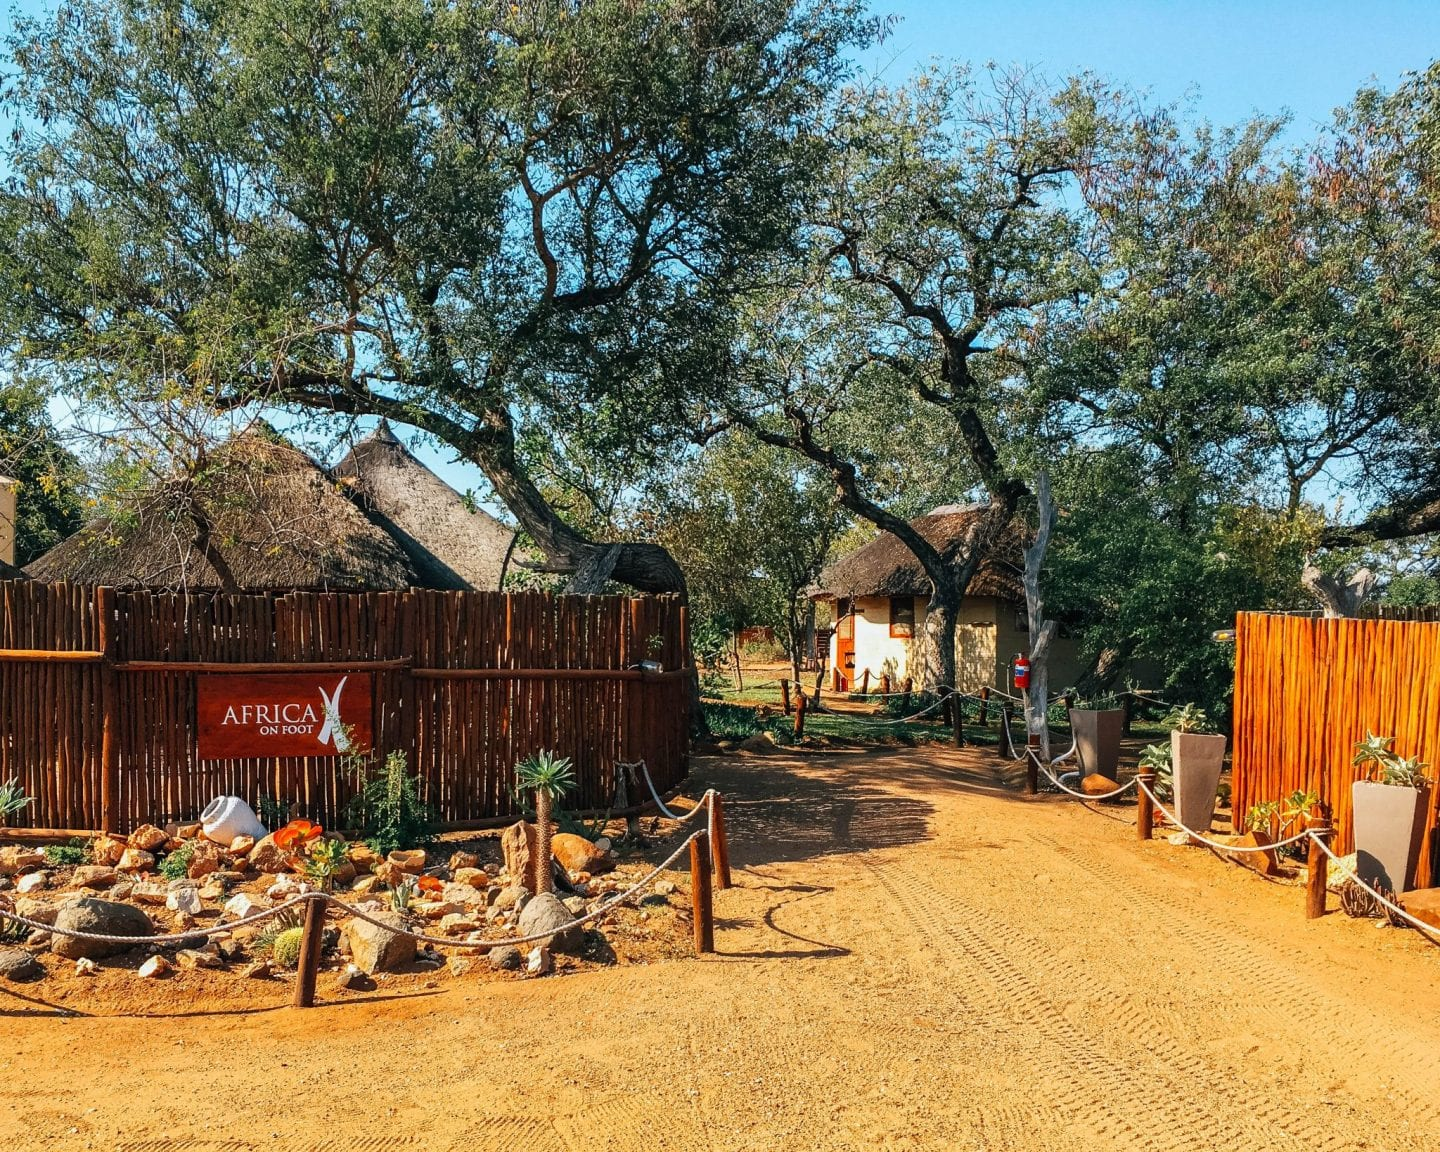 Africa on Foot: a boutique safari lodge in review